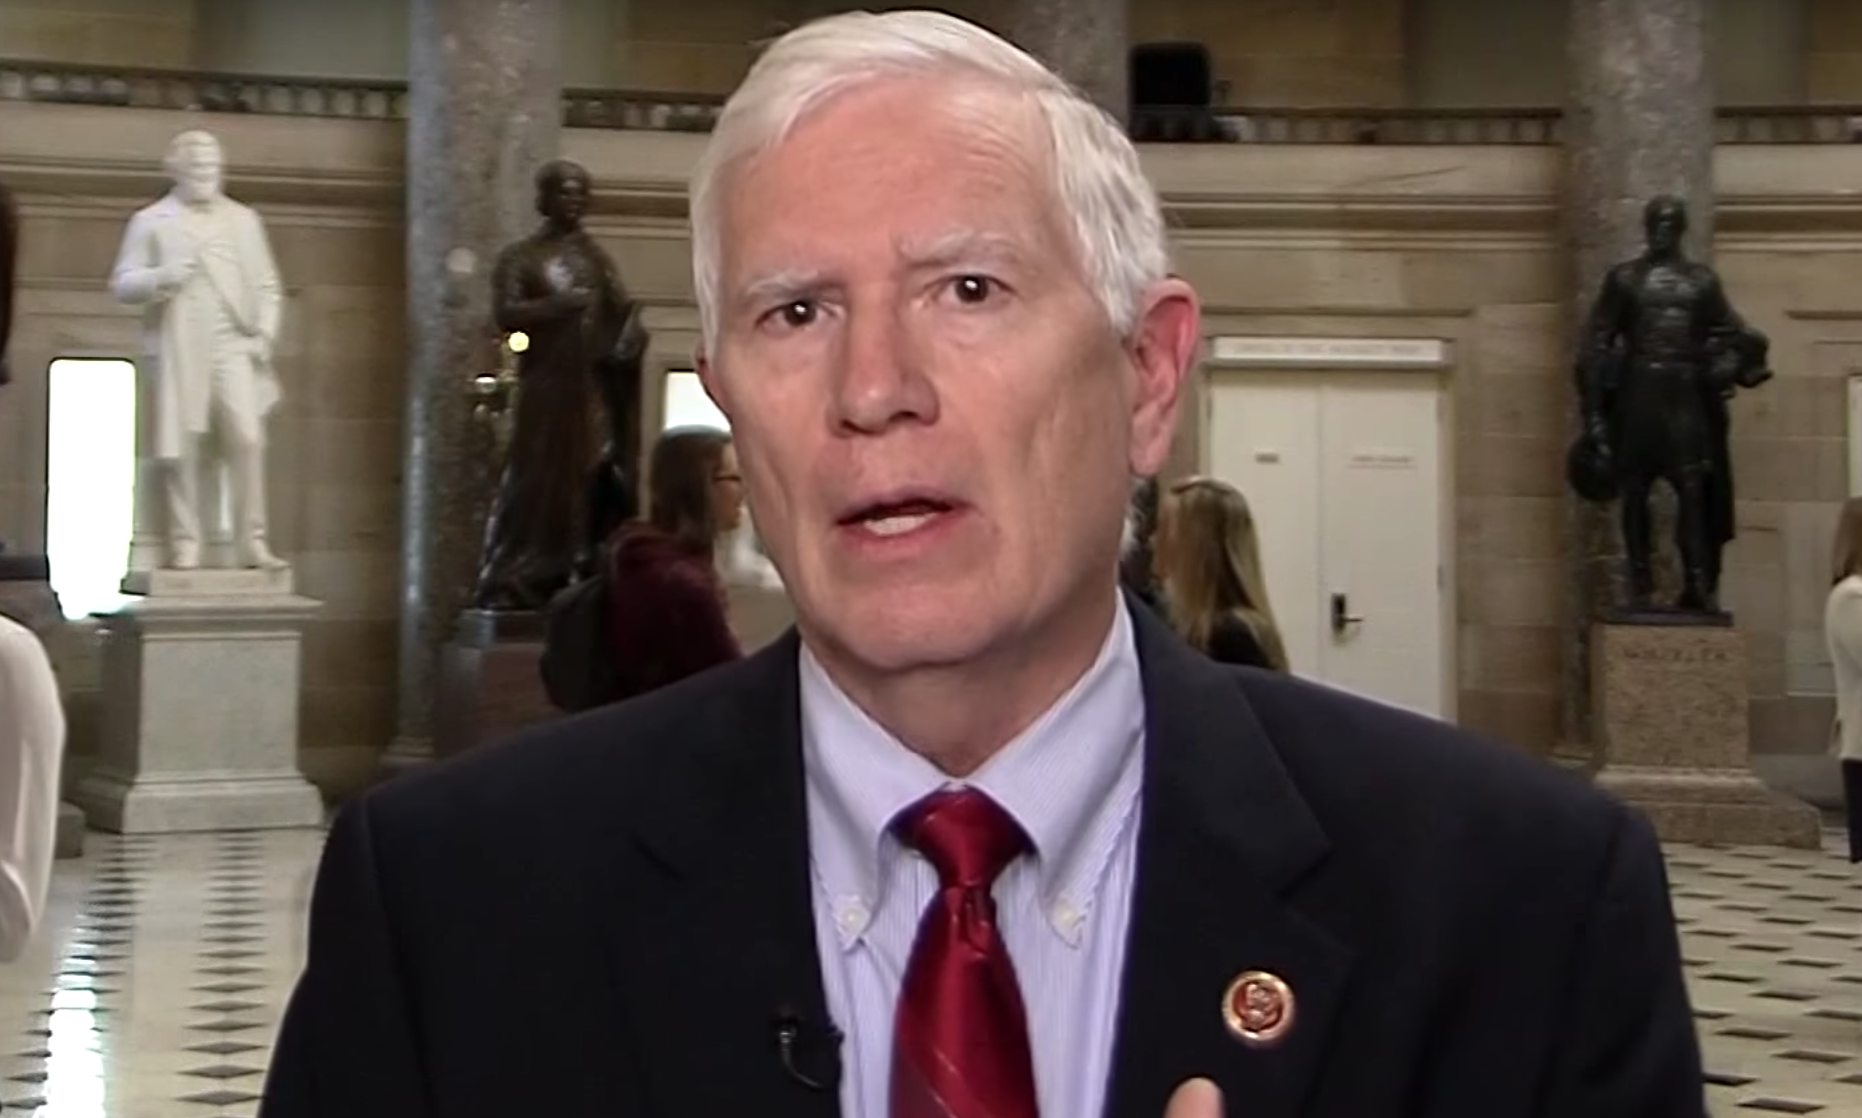 GOP Congressman quotes Hitler in anti-Semitic attack on Democrats and the press